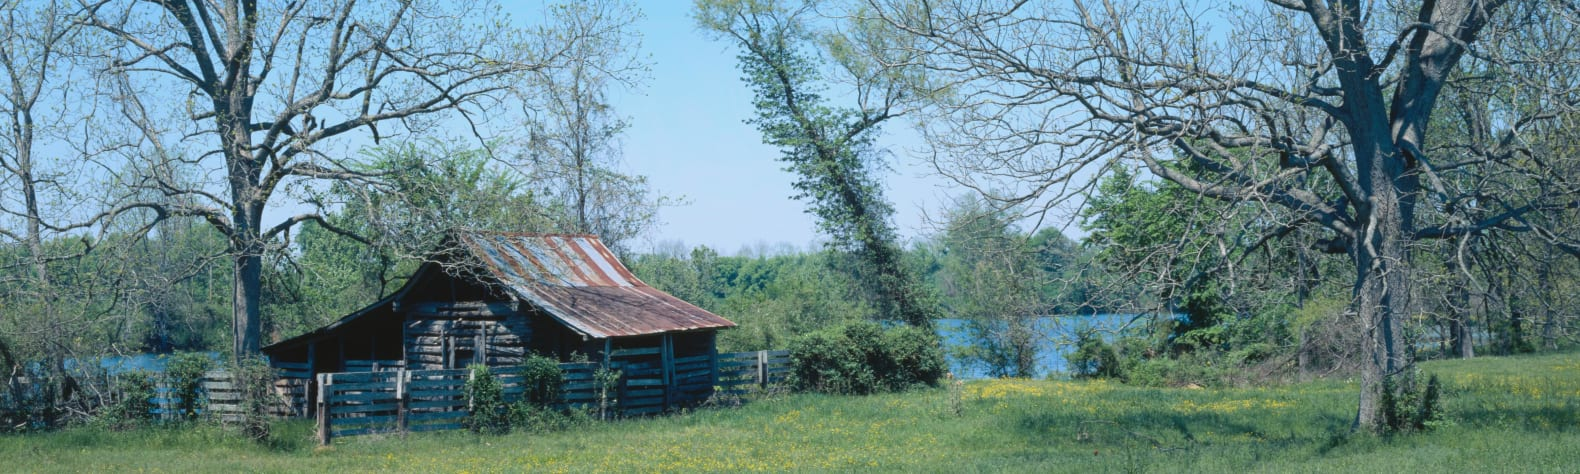 Cane River Creole National Historical Park